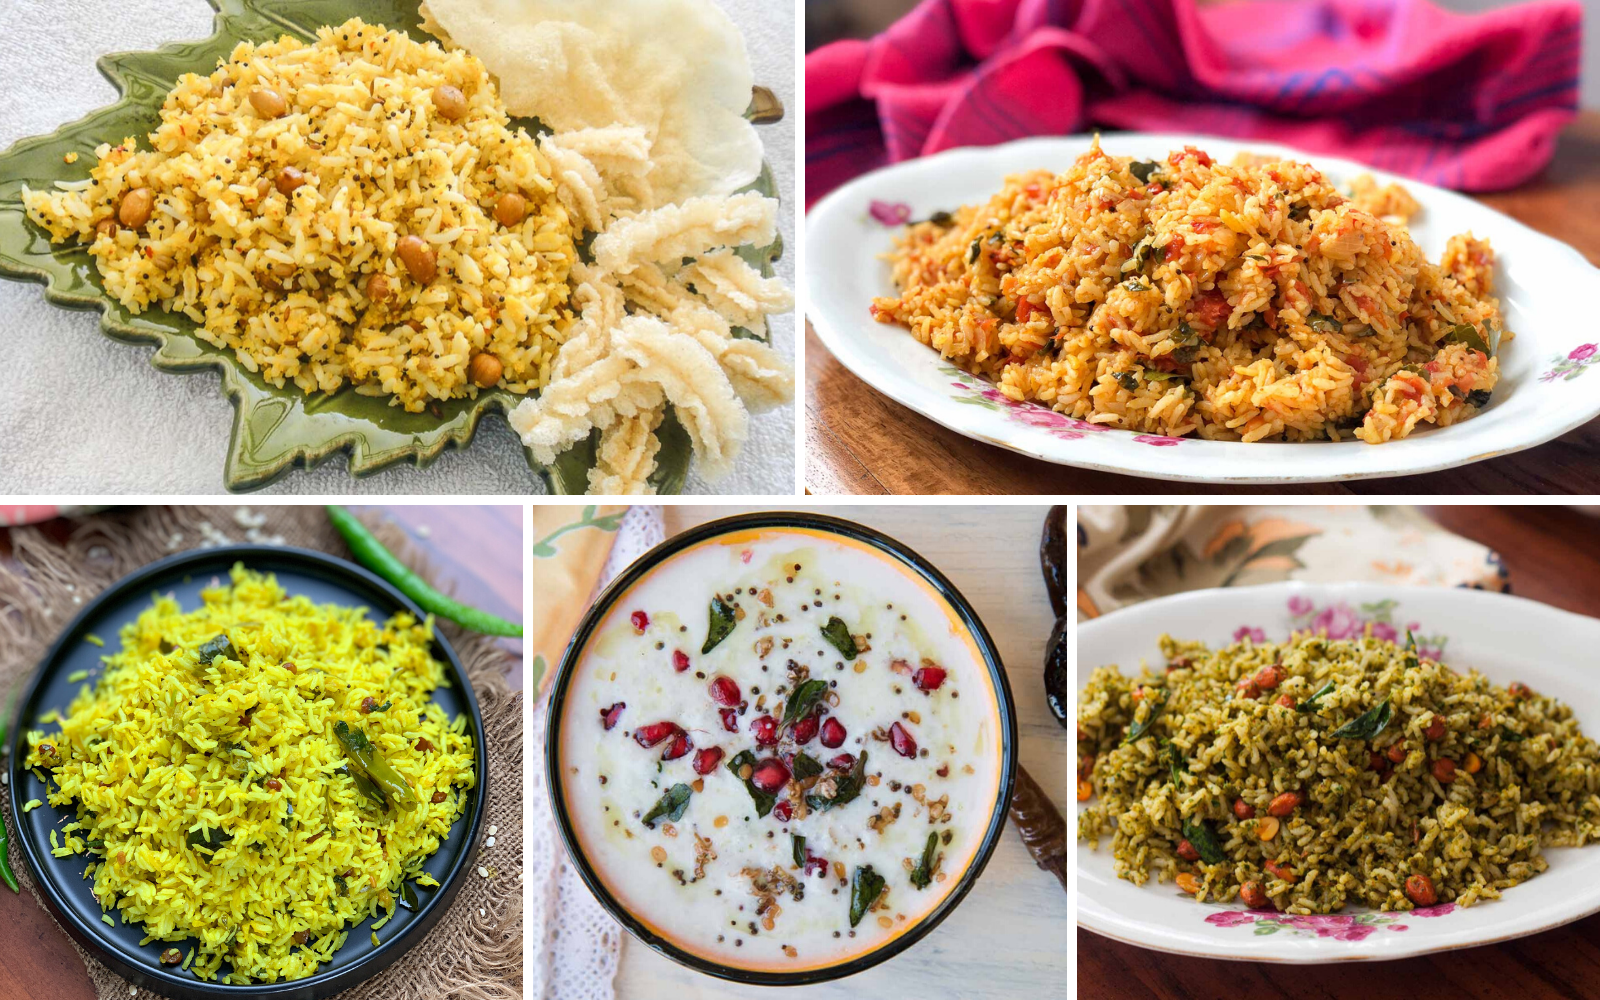 https://www.archanaskitchen.com/variety-rice-recipes-that-make-perfect-one-dish-meals